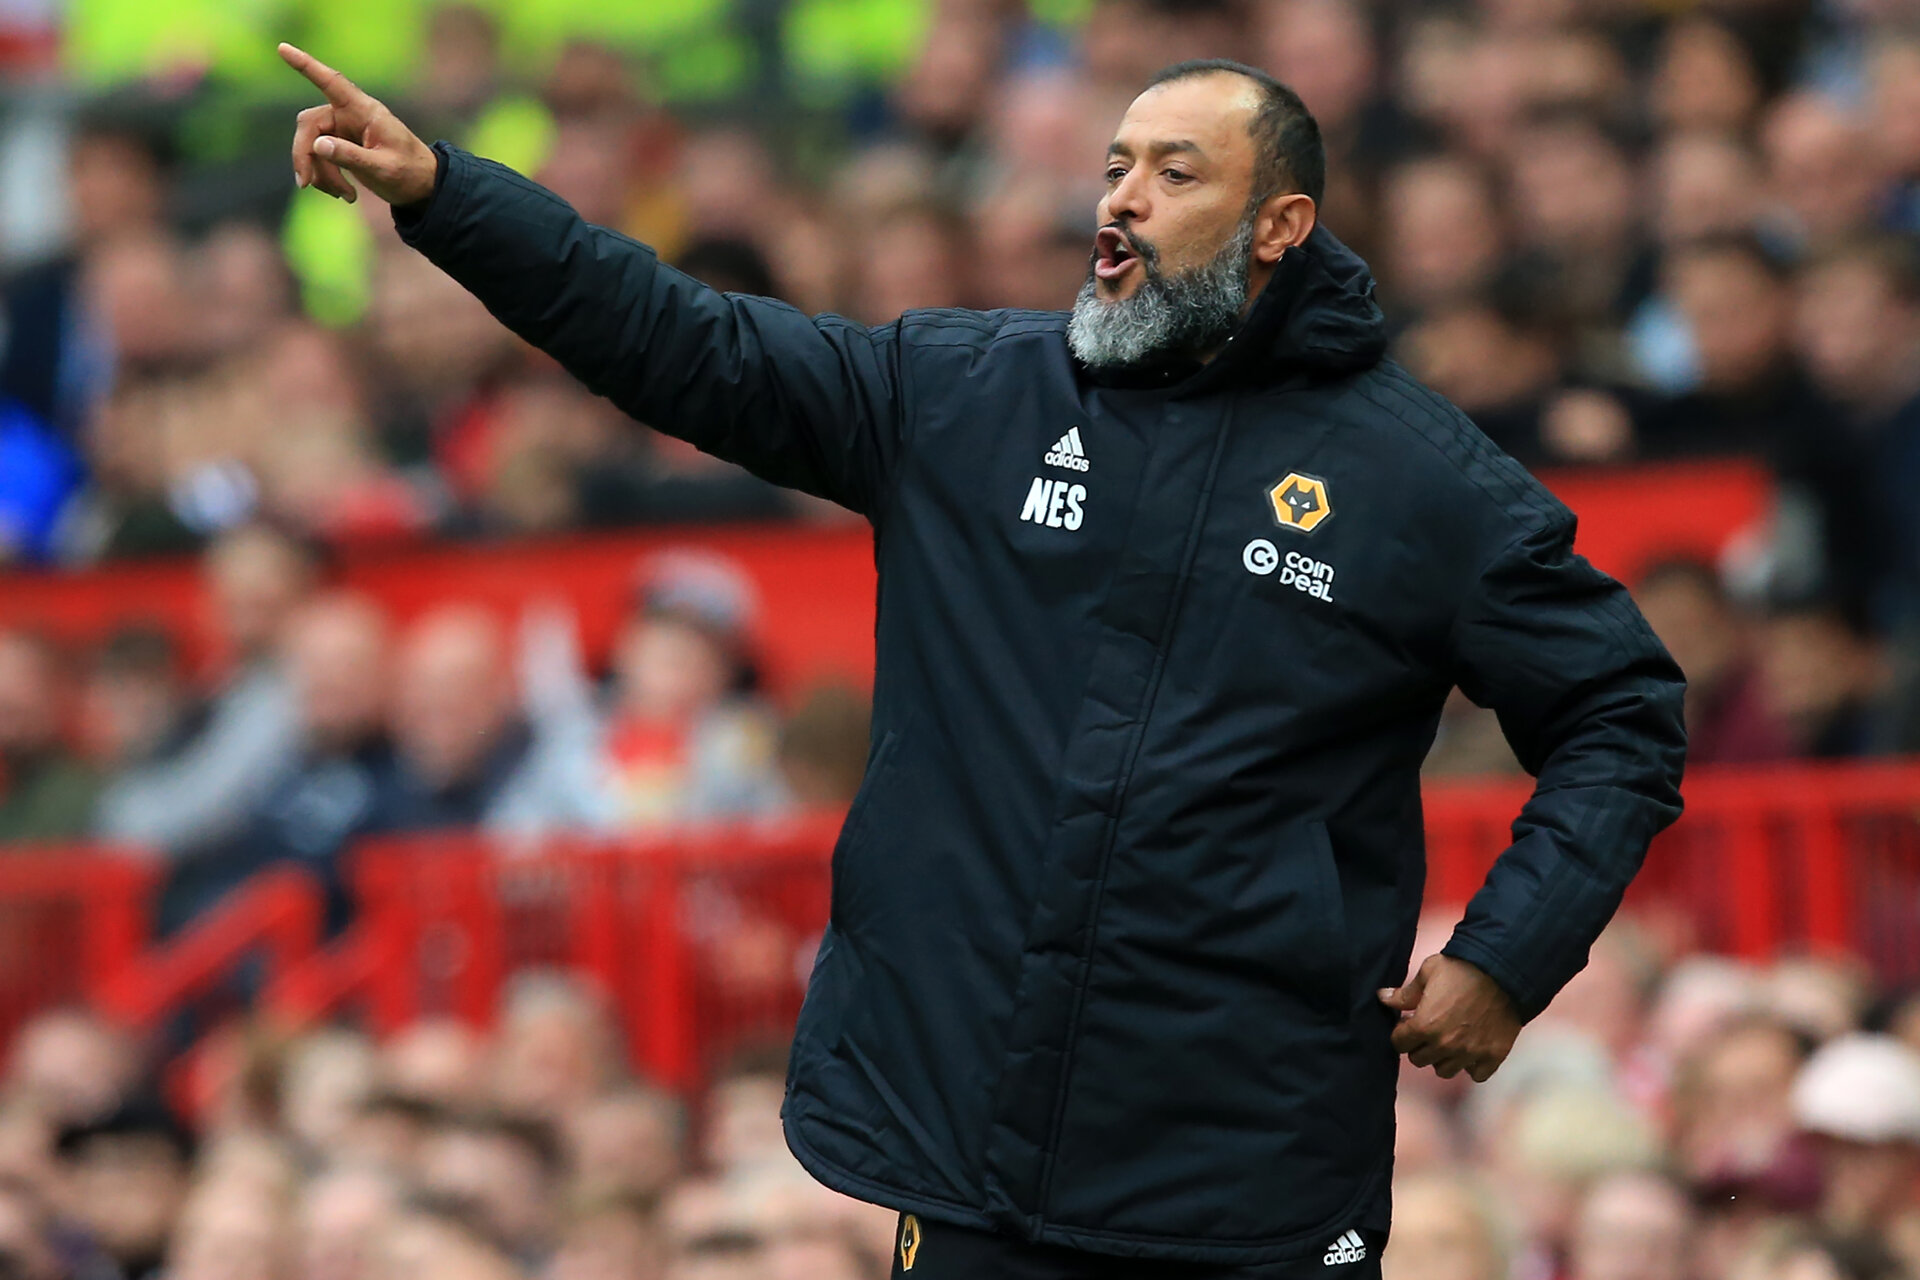 Wolverhampton Wanderers' Portuguese head coach Nuno Espirito Santo gestures on the touchline during the English Premier League football match between Manchester United and Wolverhampton Wanderers at Old Trafford in Manchester, north west England, on September 22, 2018. (Photo by Lindsey PARNABY / AFP) / RESTRICTED TO EDITORIAL USE. No use with unauthorized audio, video, data, fixture lists, club/league logos or 'live' services. Online in-match use limited to 120 images. An additional 40 images may be used in extra time. No video emulation. Social media in-match use limited to 120 images. An additional 40 images may be used in extra time. No use in betting publications, games or single club/league/player publications. /         (Photo credit should read LINDSEY PARNABY/AFP/Getty Images)